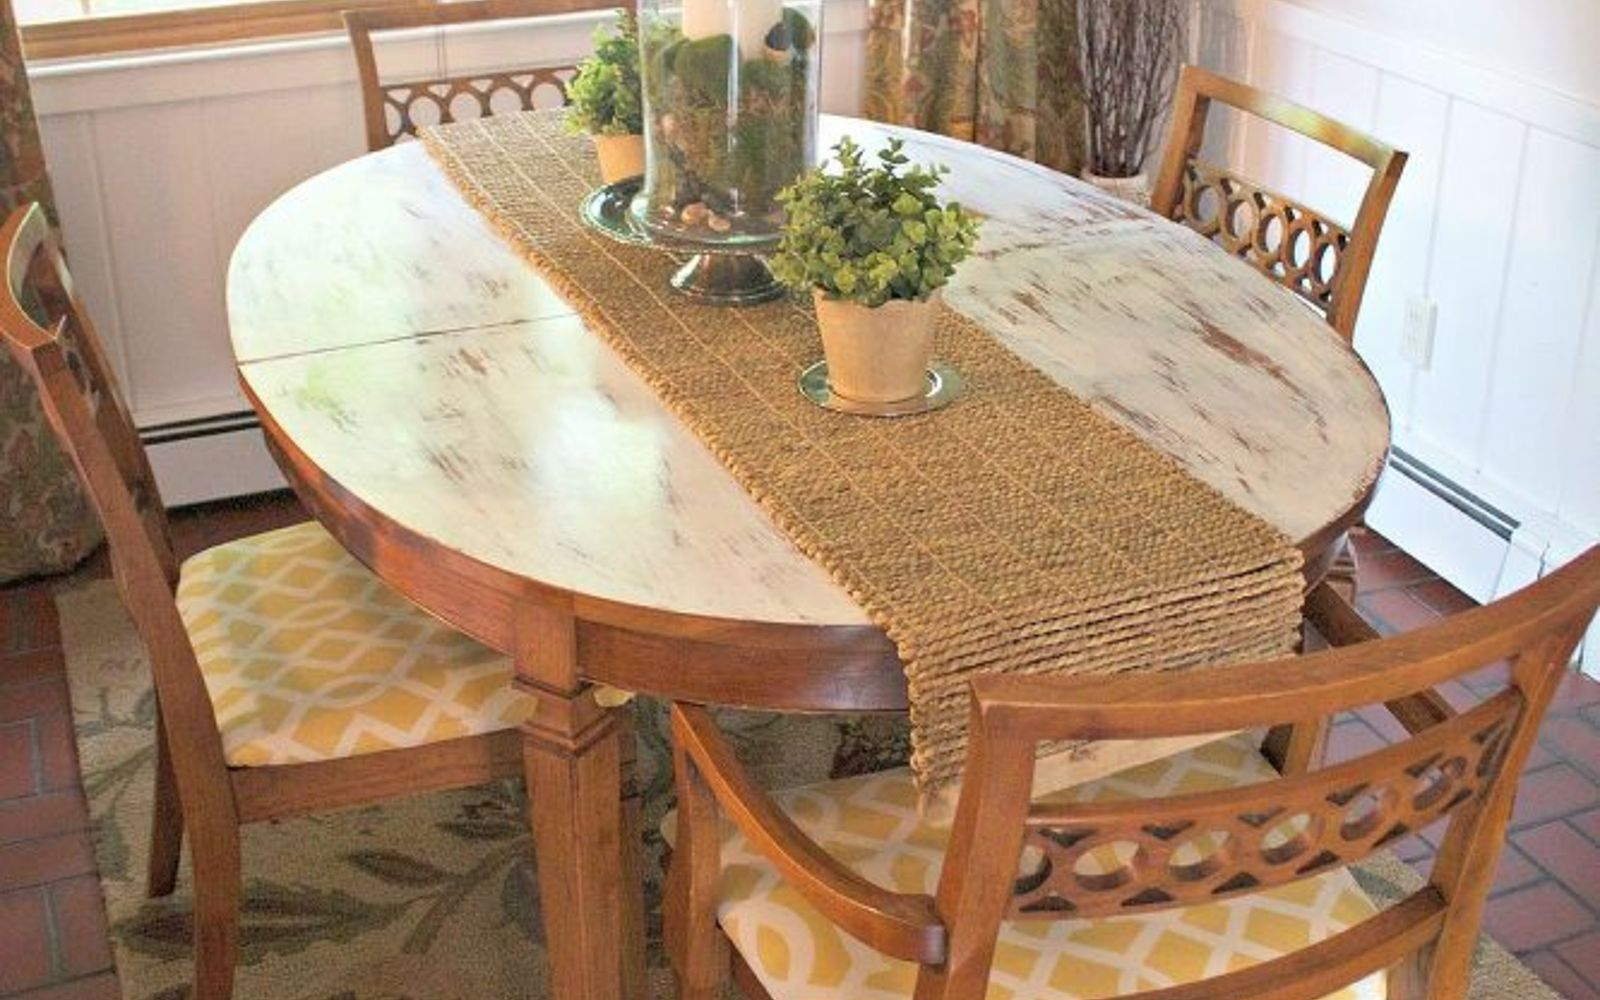 s 13 gorgeous ways to bring your worn kitchen table back to life, kitchen design, painted furniture, Embrace the age with a distressed paint top